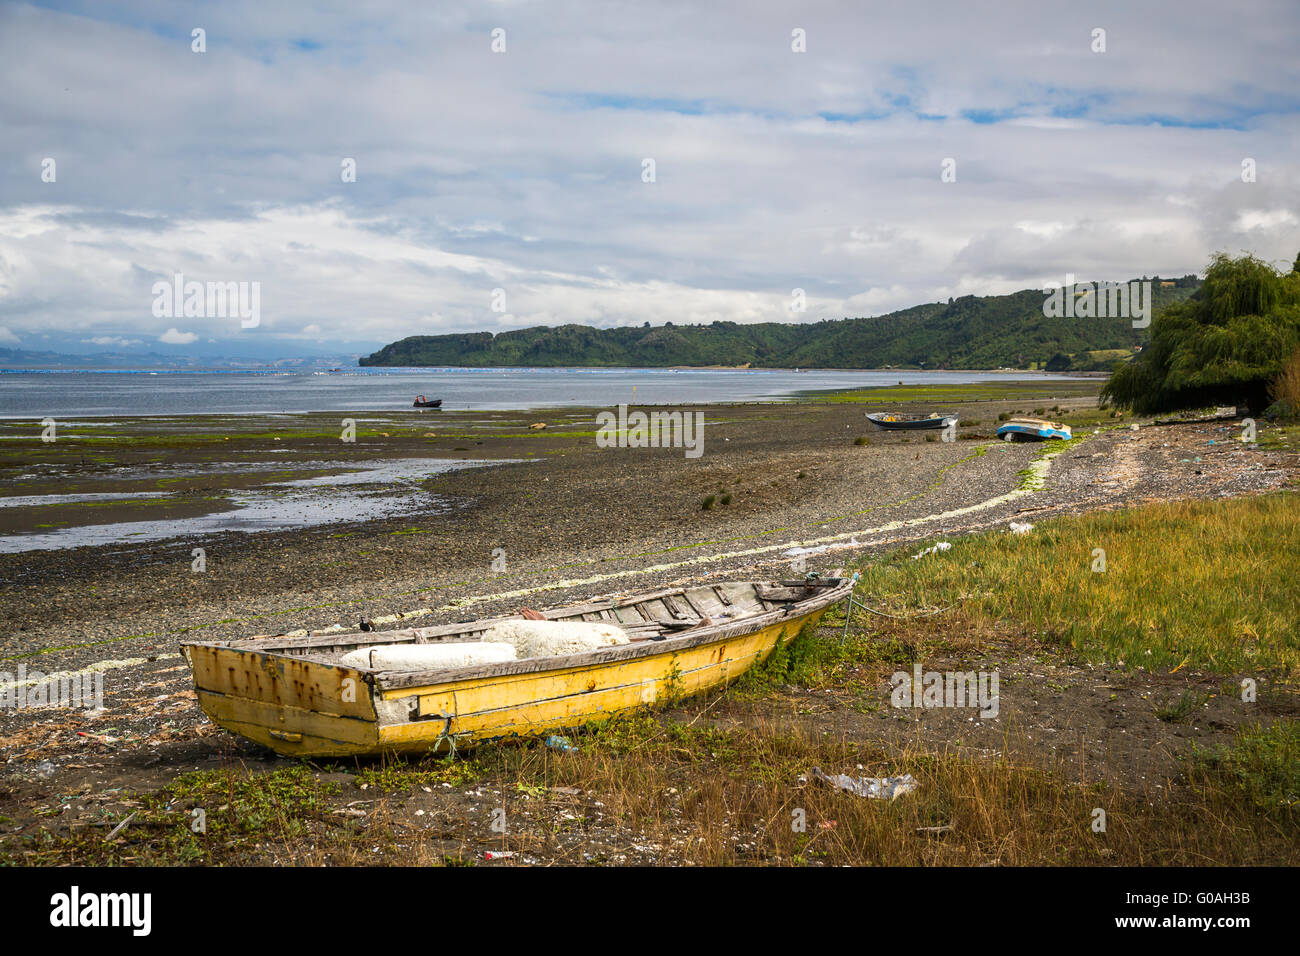 Low tide on Quinchao Island, Chile, South America. - Stock Image